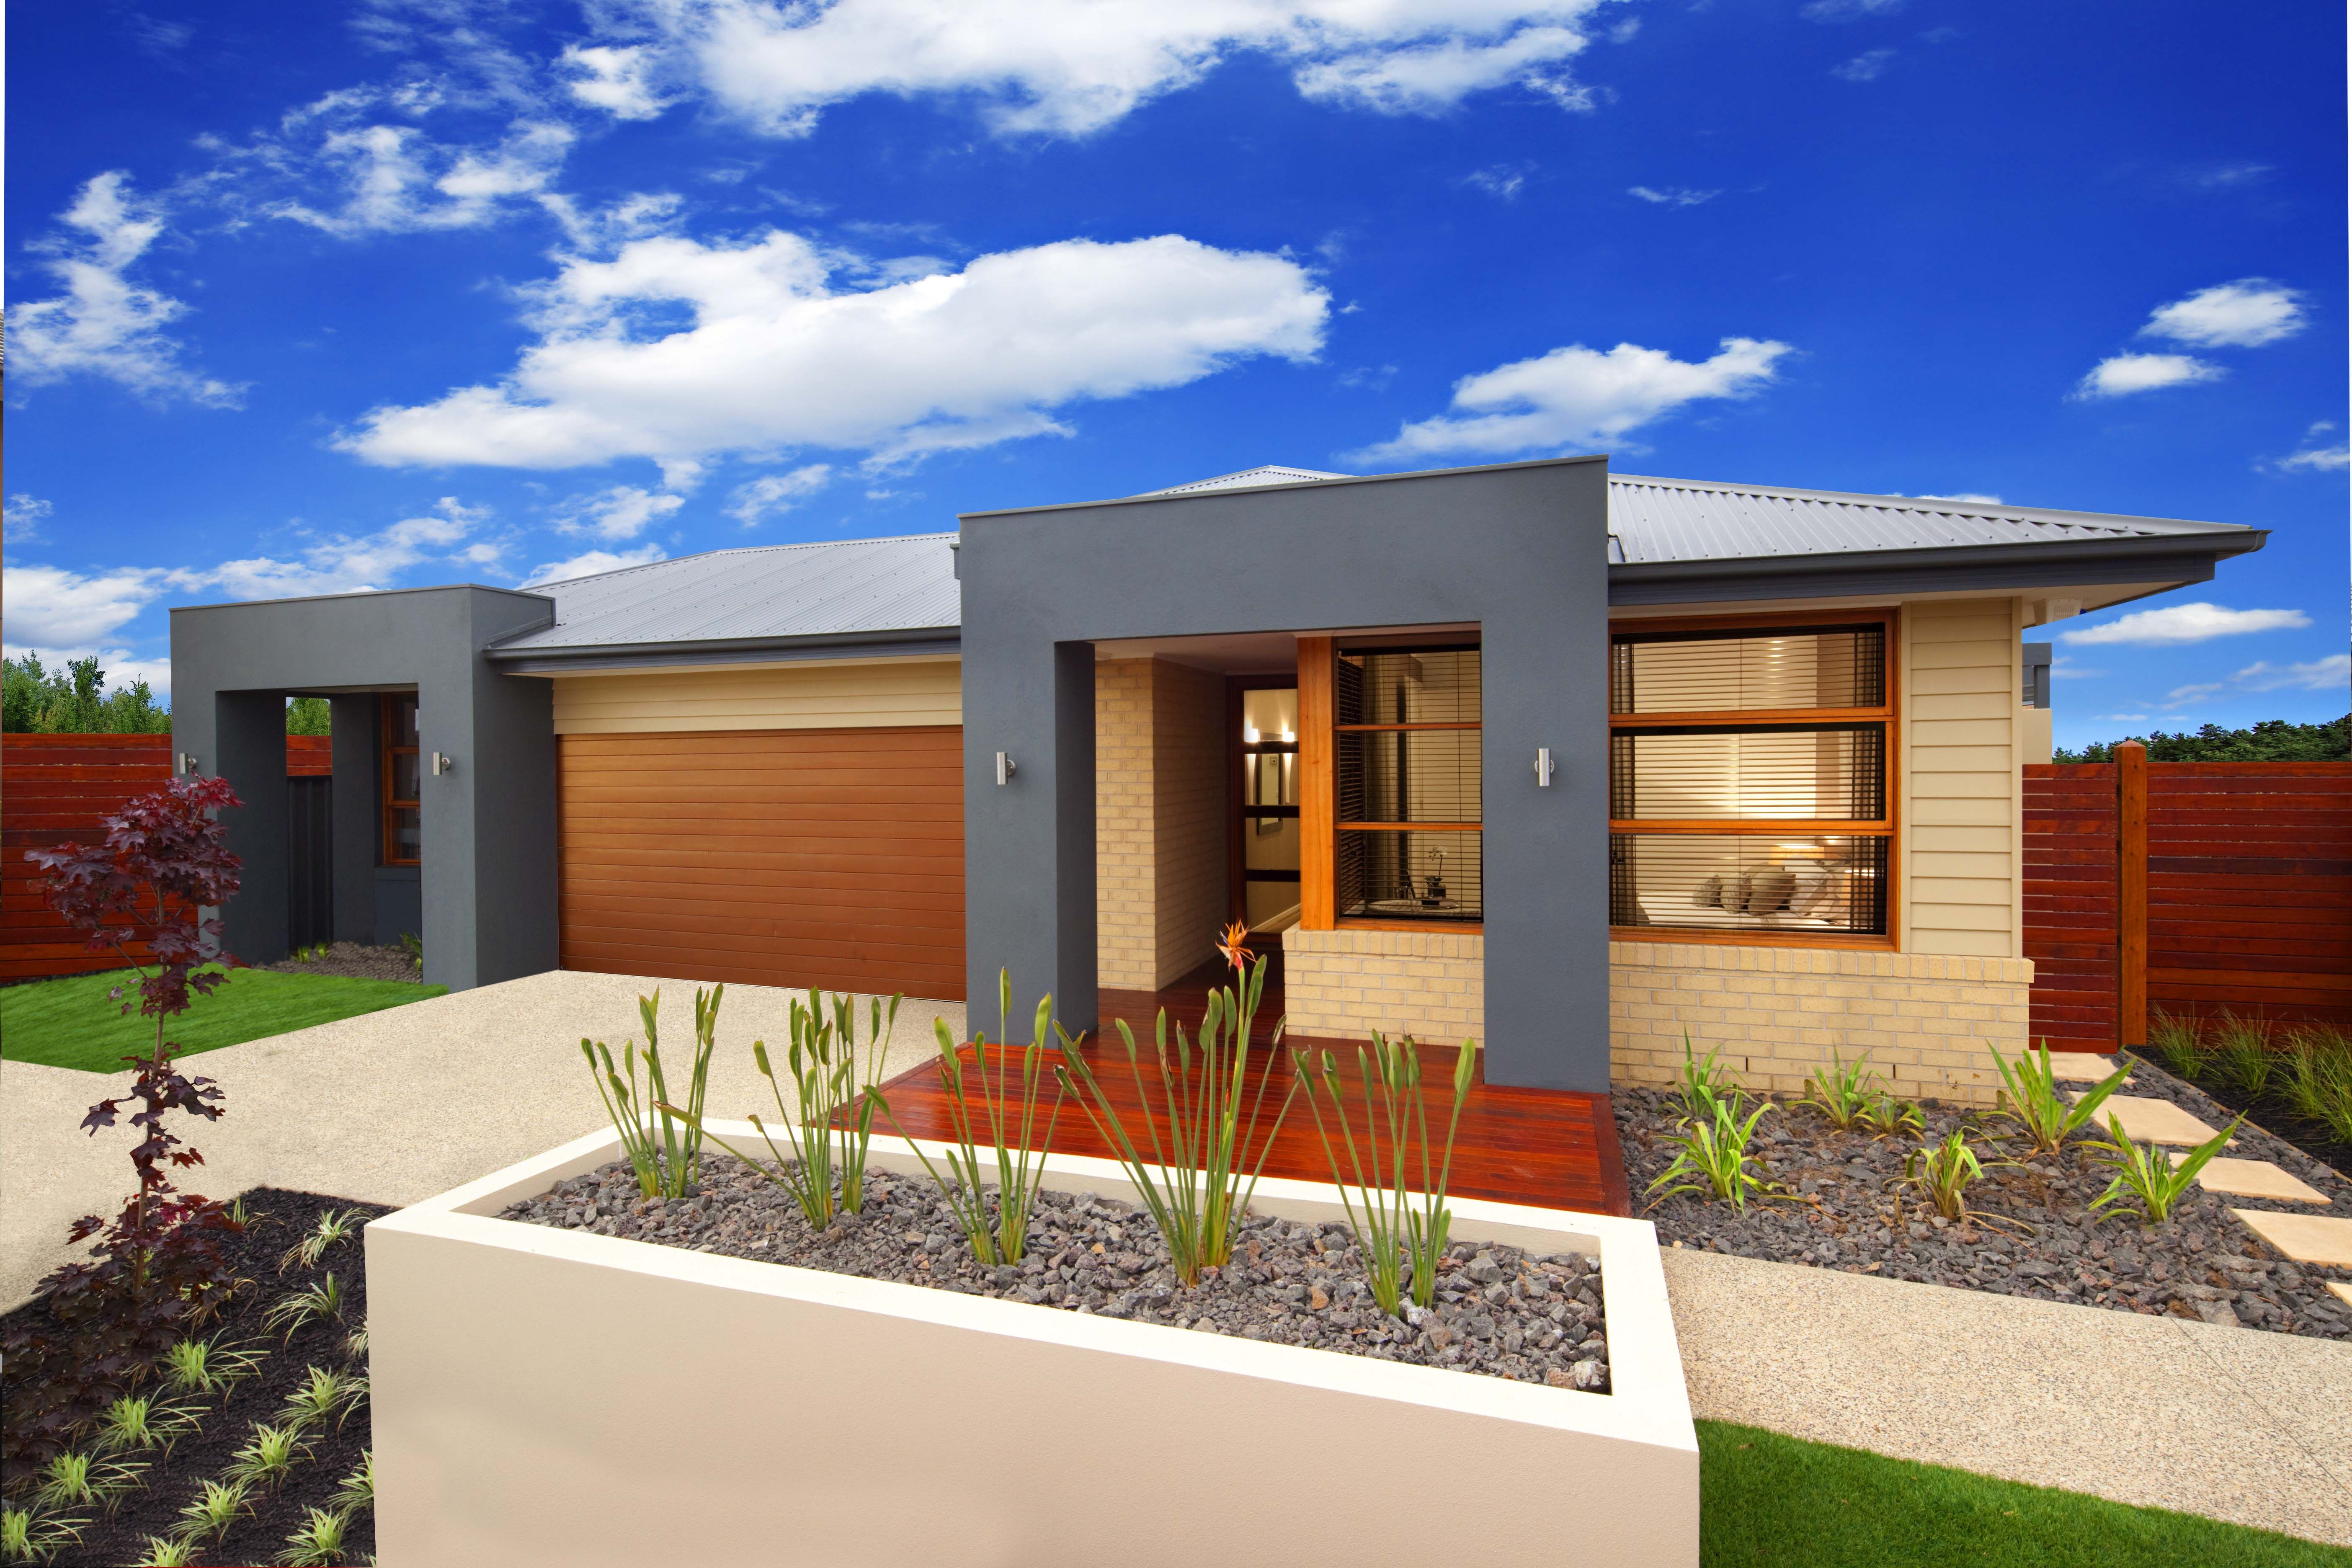 Sierra newhome Simonds homes, Home, House styles